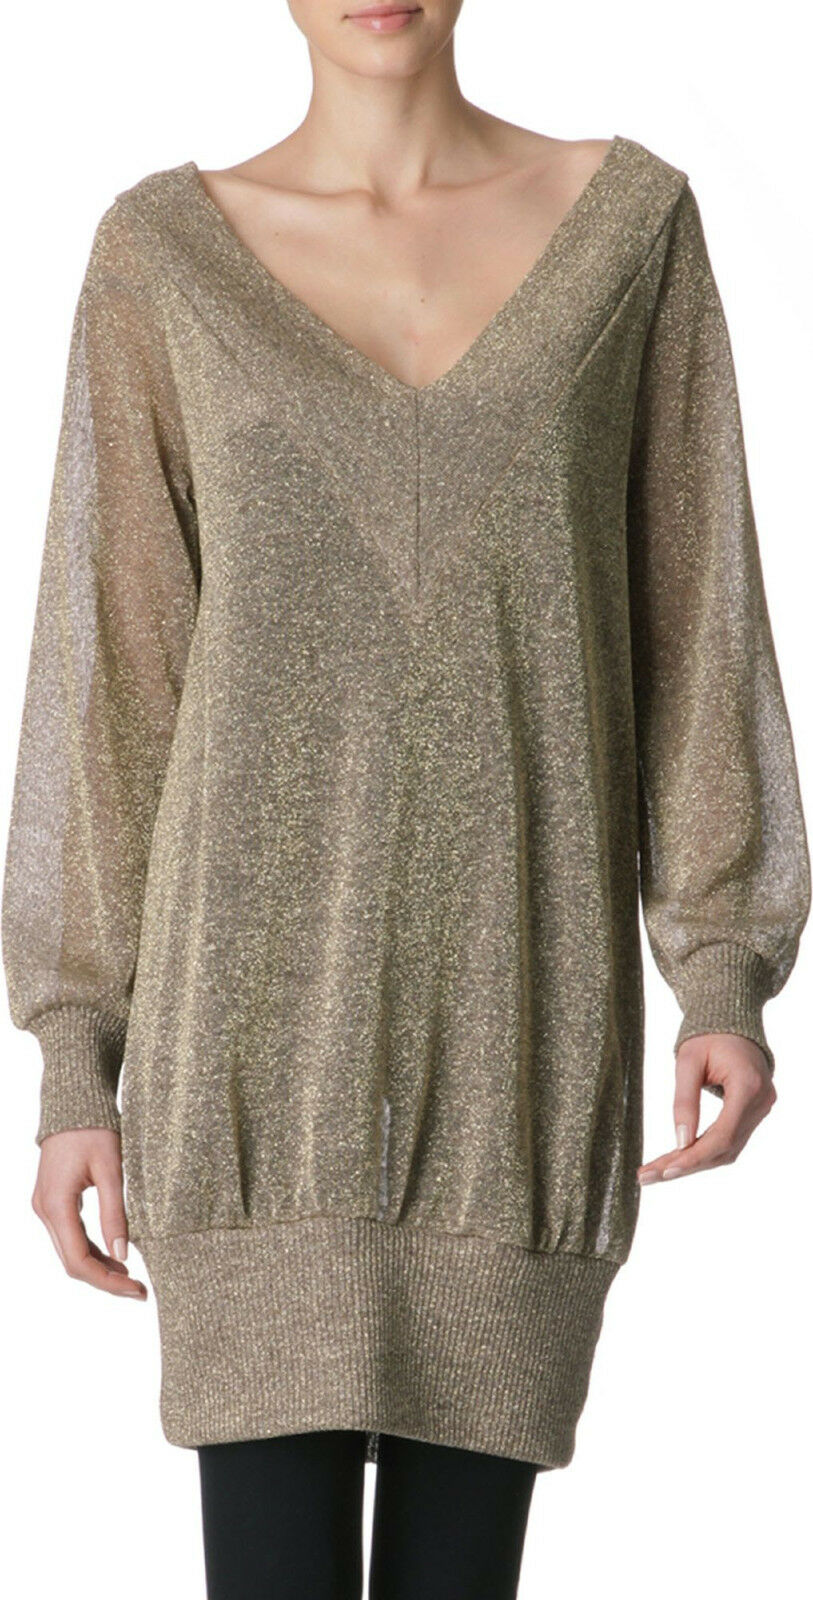 VIVIENNE WESTWOOD ANGLOMANIA  Gold deep v-neck Agitator sweater dress M NEW